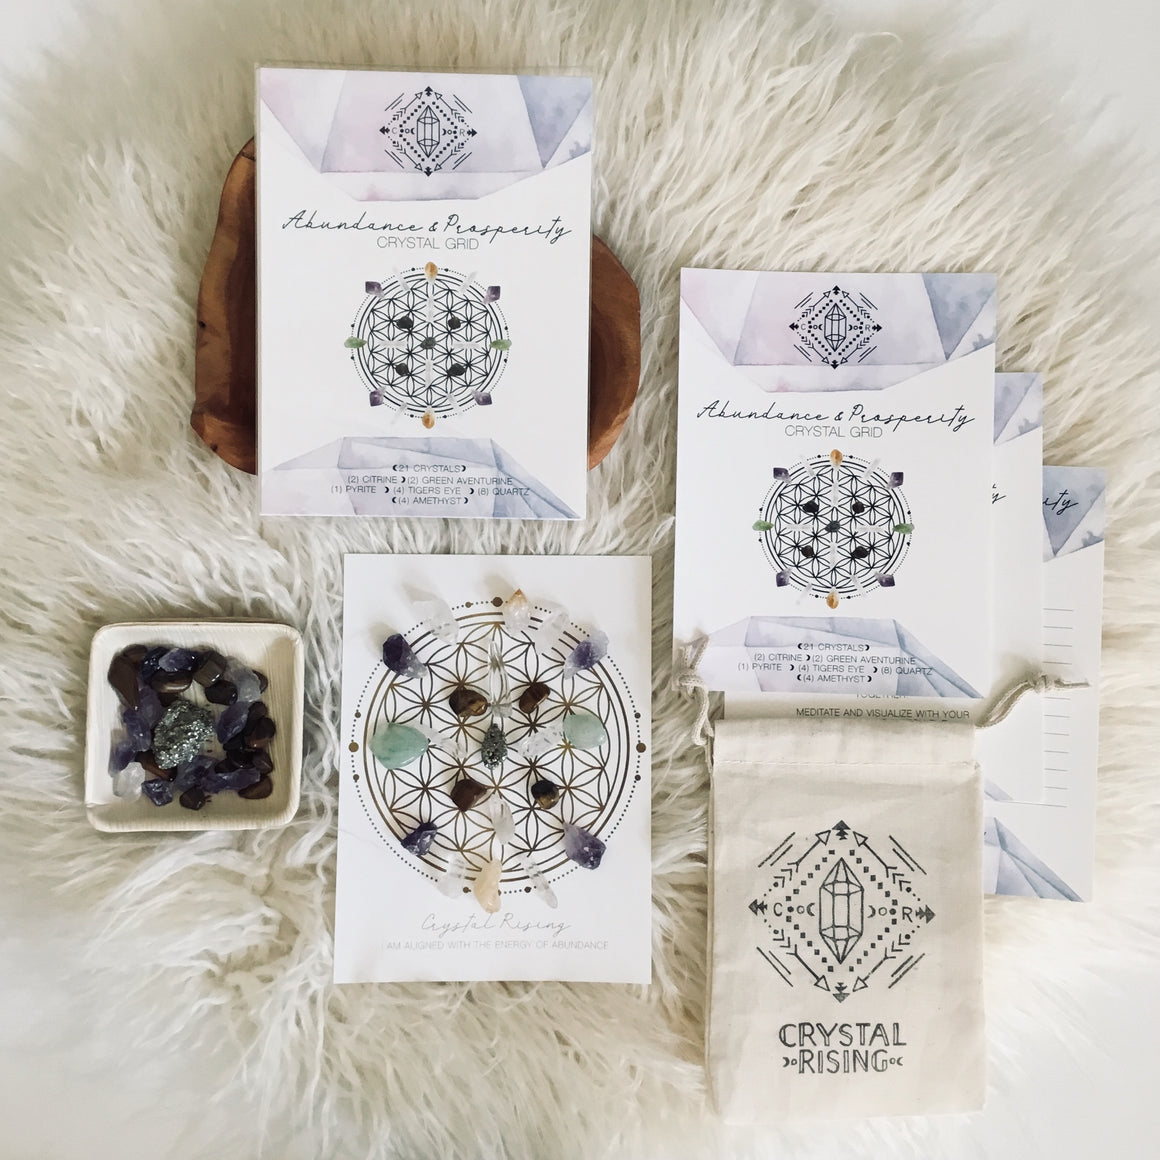 Mini Crystal Grid Ritual Kit - Crystal Rising - for sale at Modest Hemp Co.